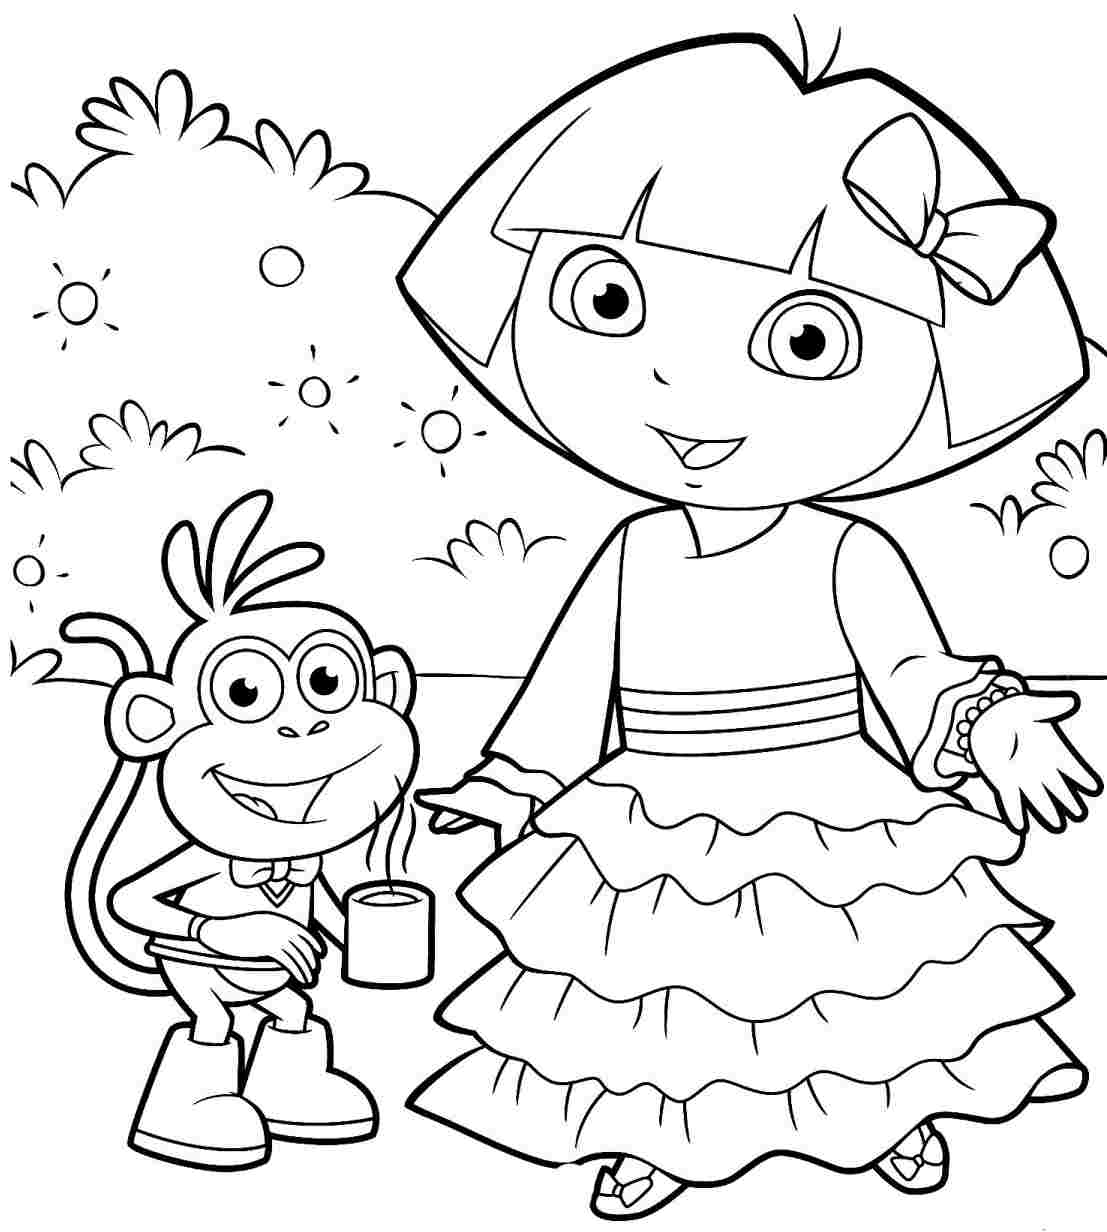 dora birthday coloring pages ; unnamed-file-569